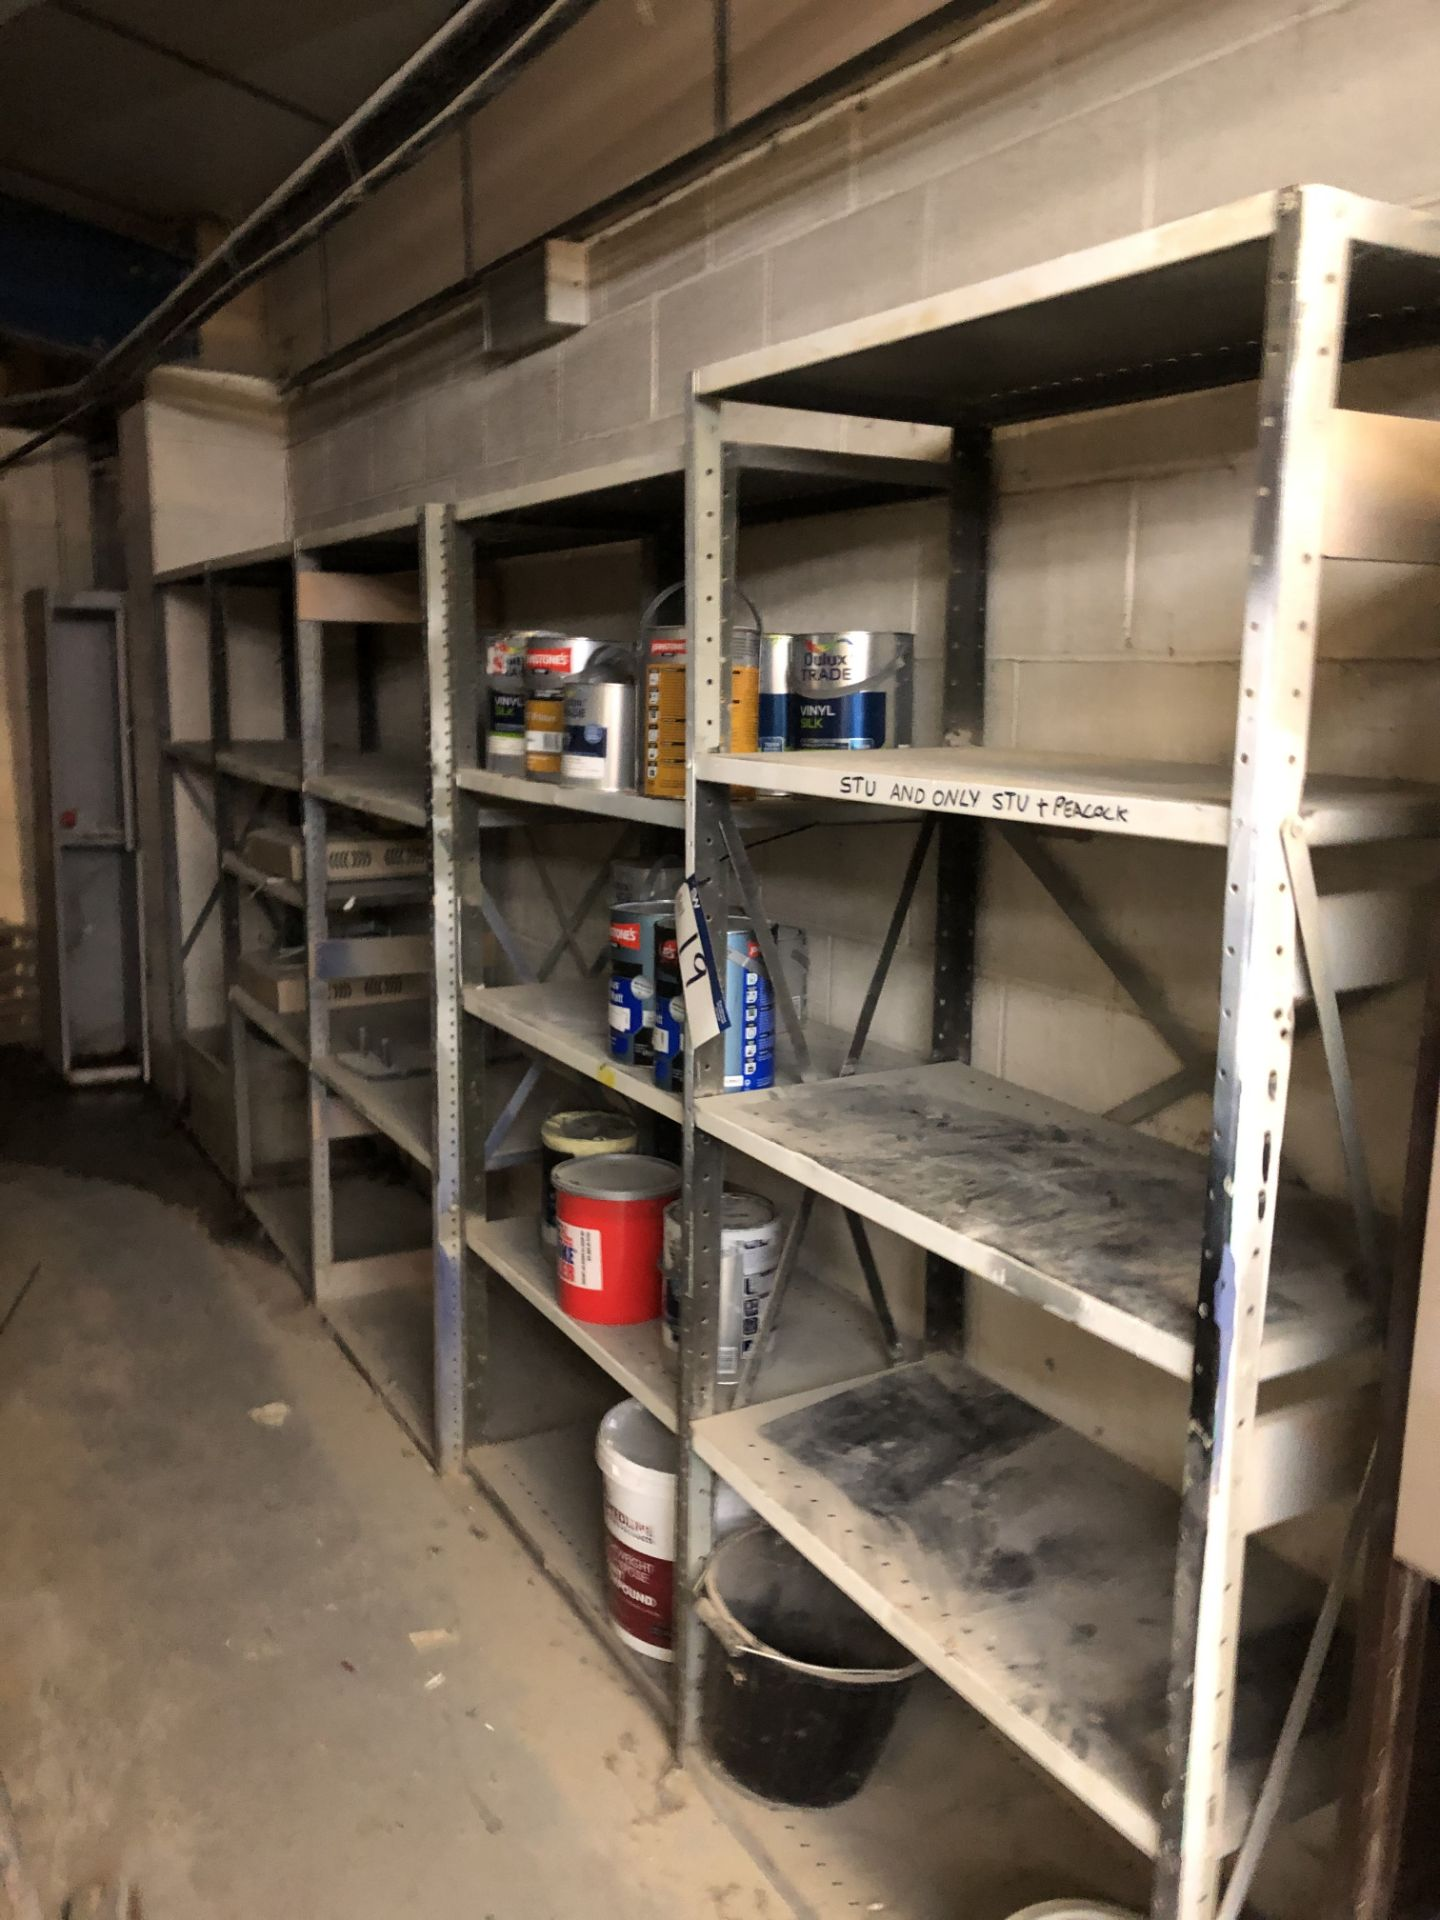 Lot 19 - 5 Bays of Steel Shelving and Contents